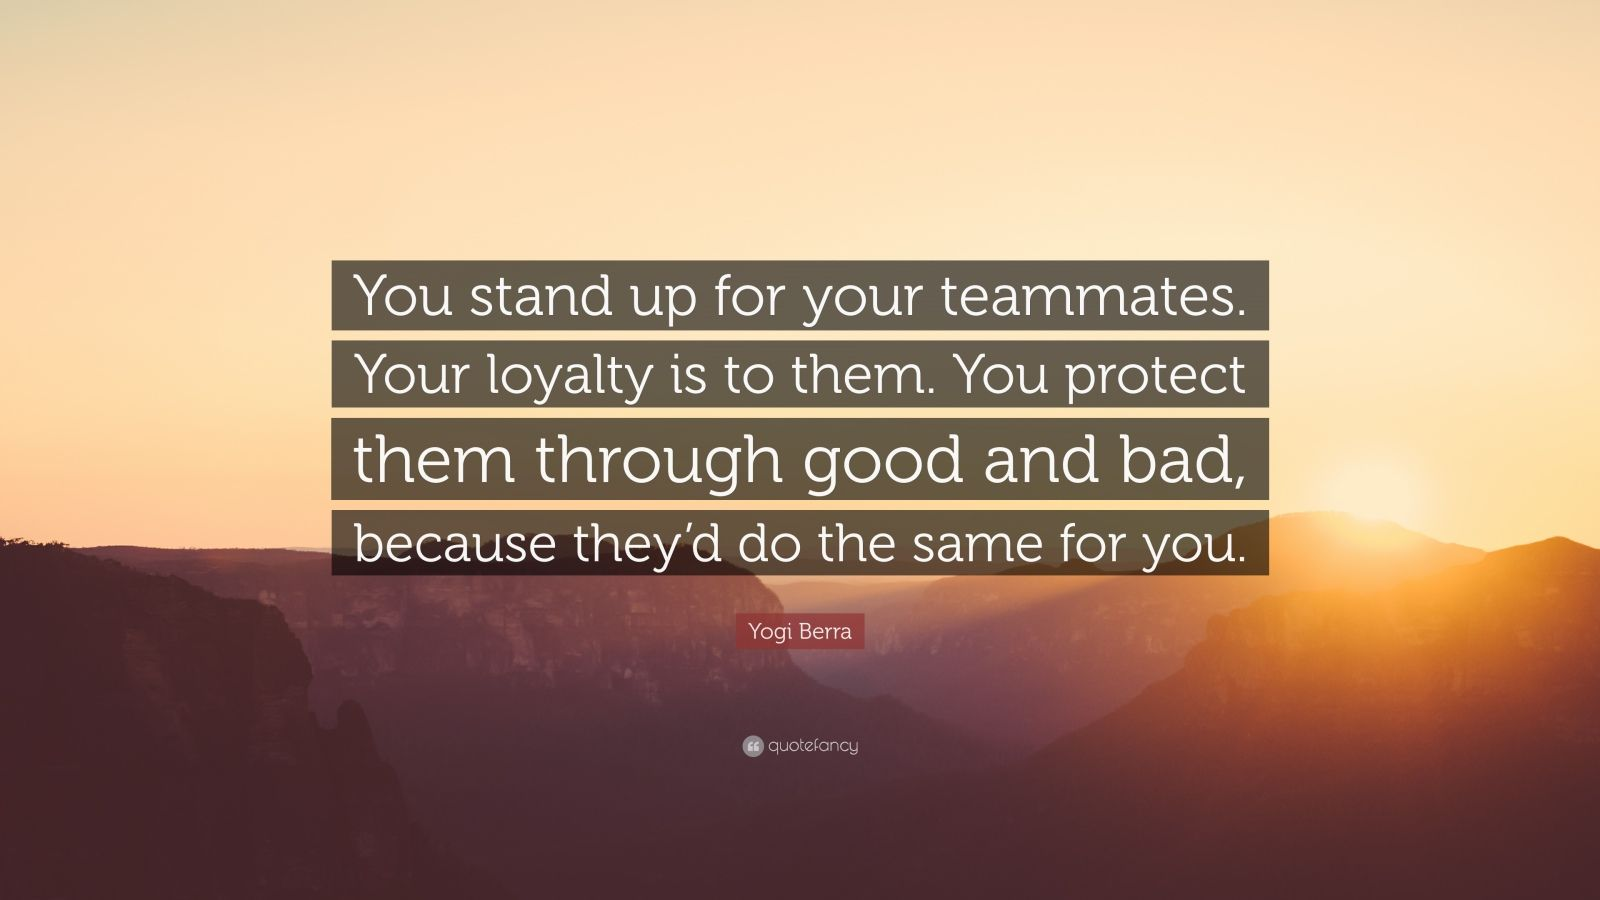 """Yogi Berra Quote: """"You stand up for your teammates. Your loyalty is to them. You protect them through good and bad, because they'd do the same for you."""""""